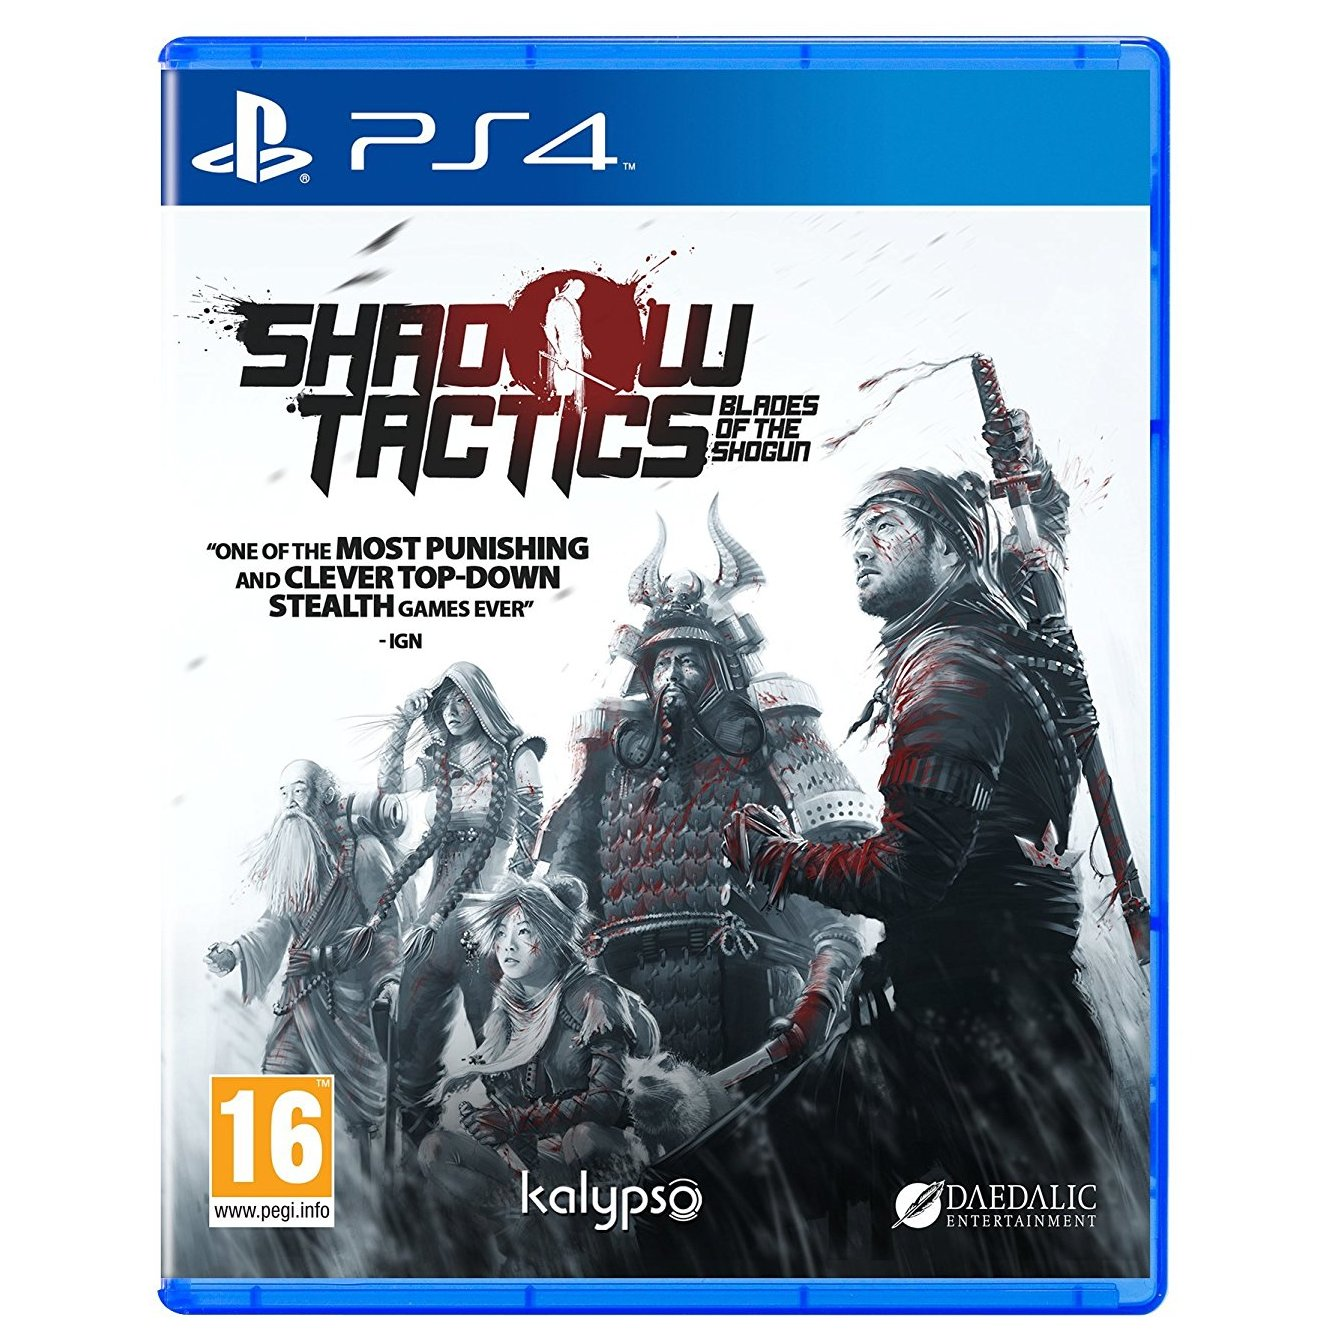 Xbox One Injustice 2 Game Price Specifications Features Sharaf Dg Ps4 Region 3 Shadow Tactics Blades Of The Shogun